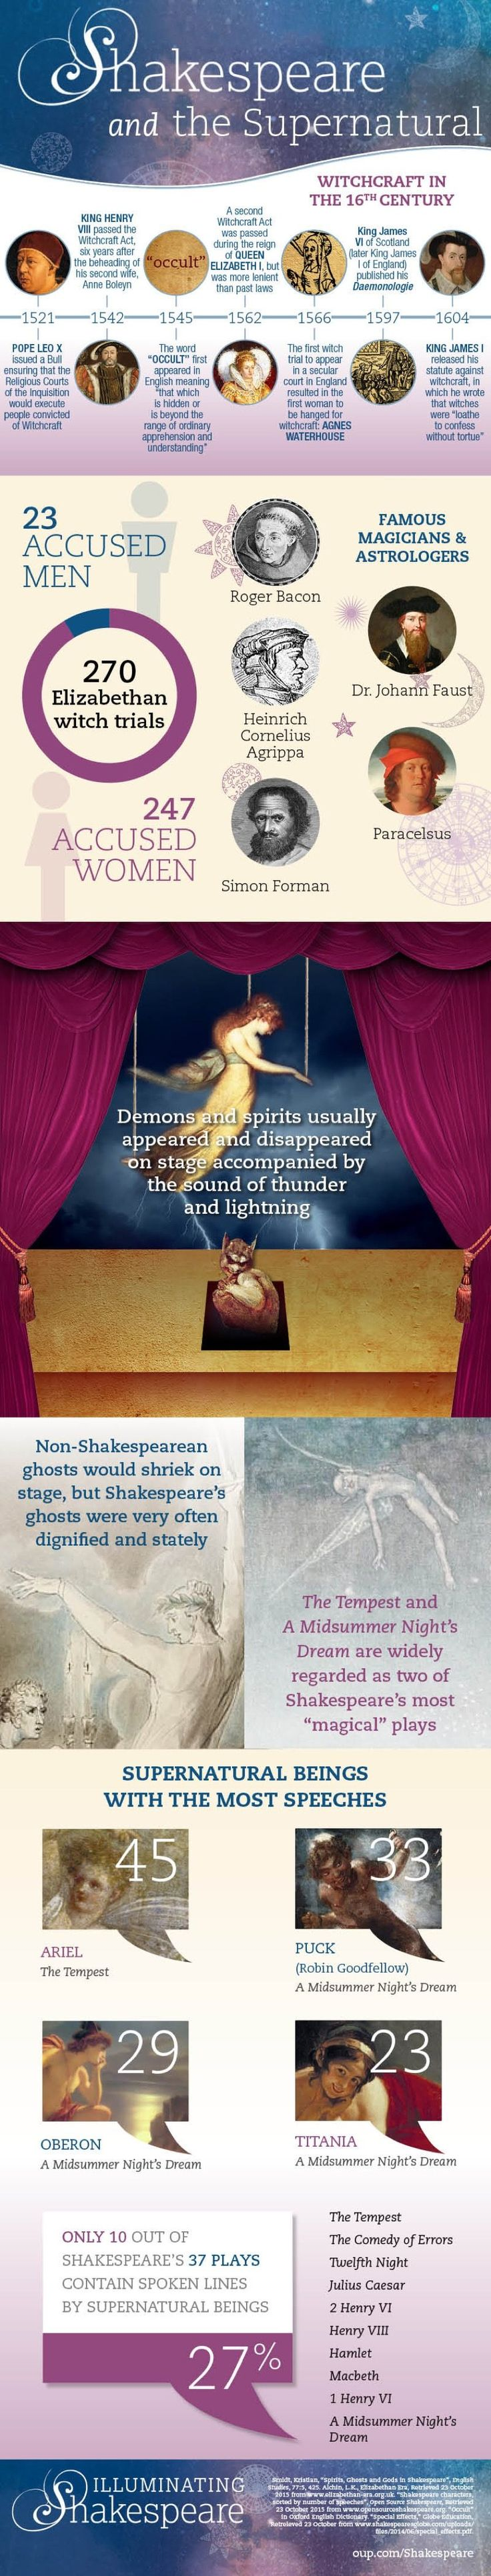 A closer look at Shakespeare's fascination with the supernatural #infographic  || Ideas and inspiration for teaching GCSE English || www.gcse-english.com ||